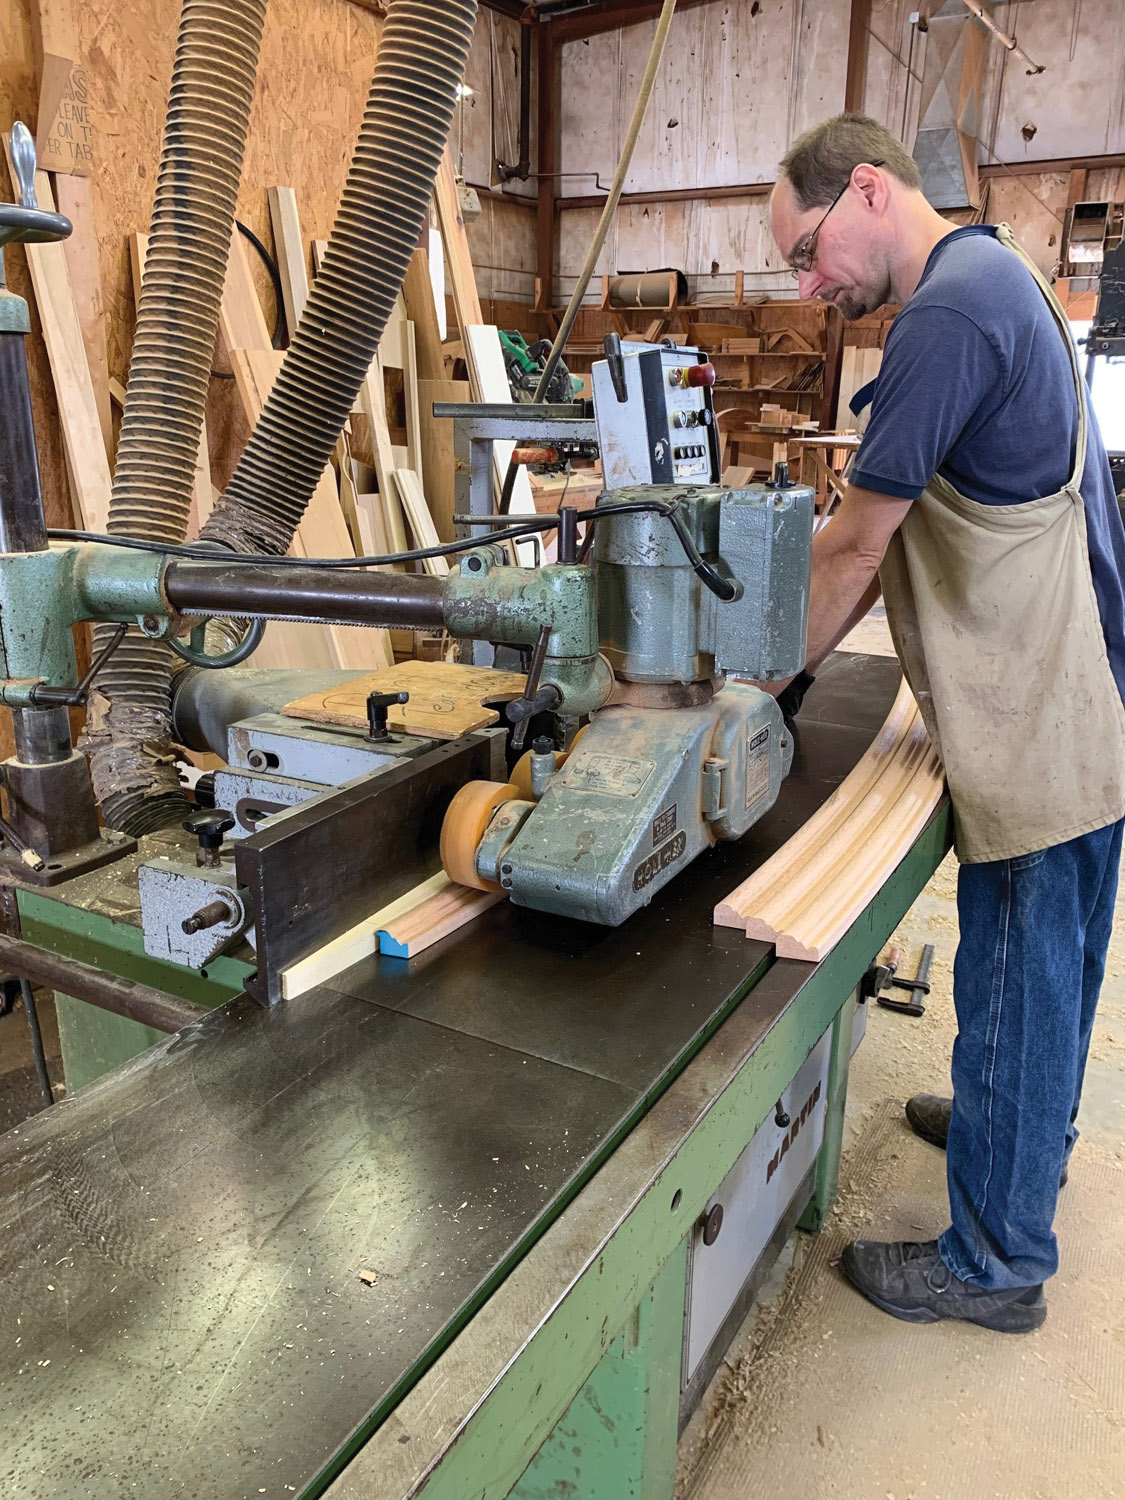 A workman  feeds wood into  the planer as  it cuts curved mouldings.